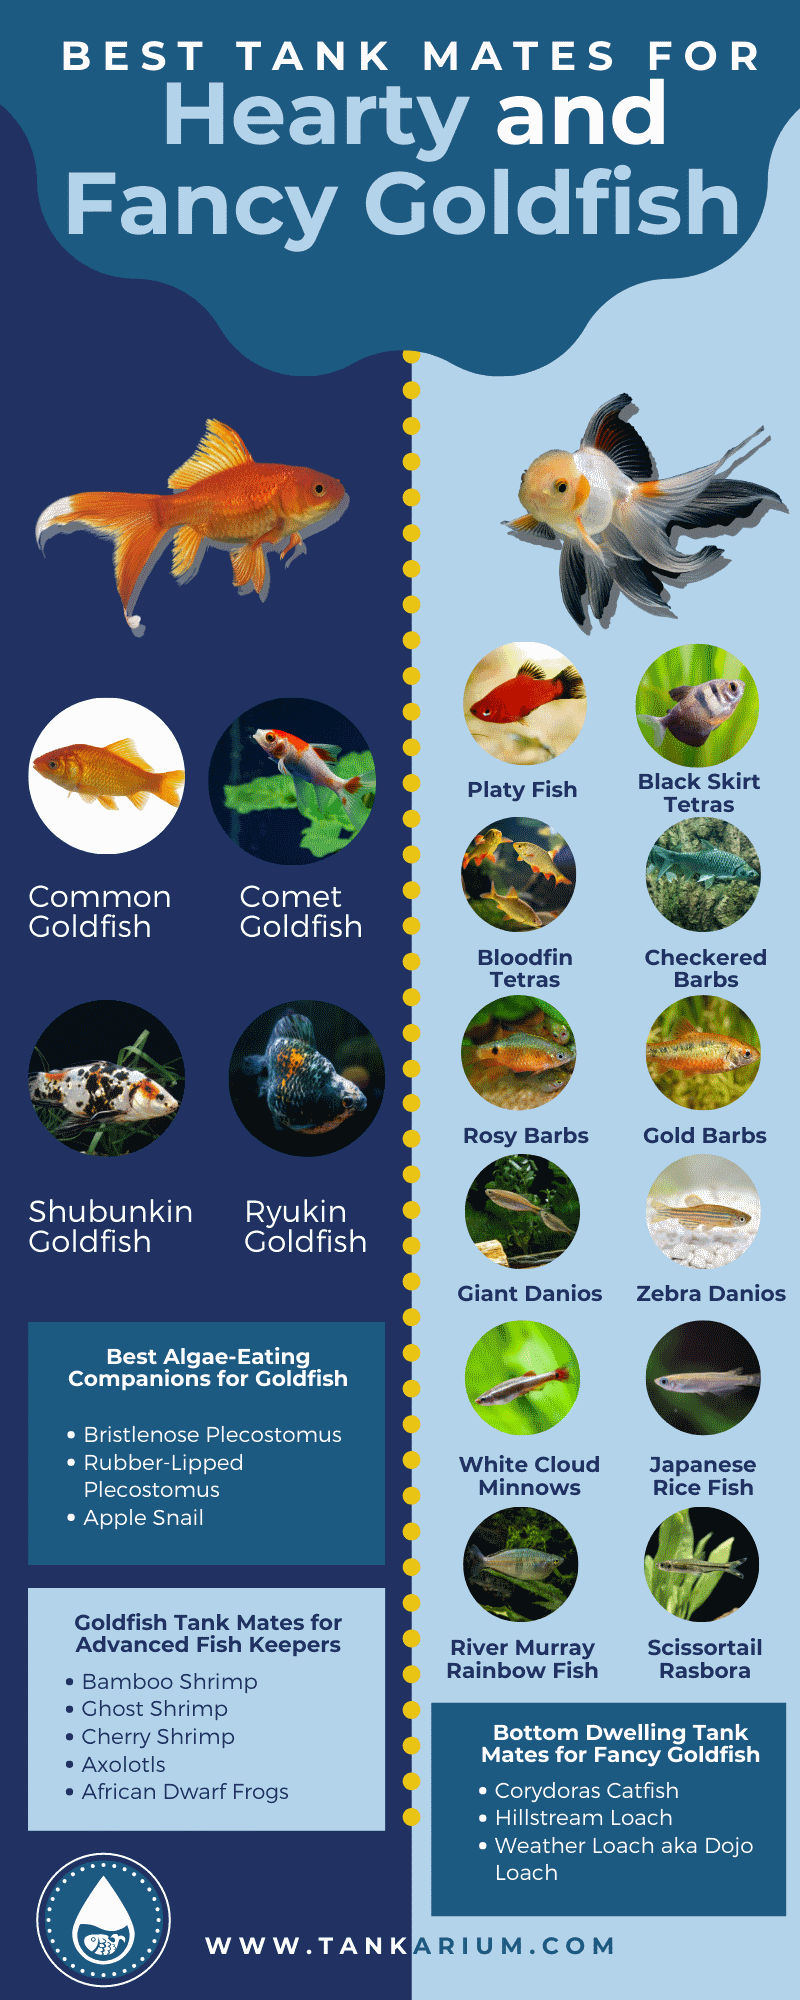 Best Tank Mates for Hearty and Fancy Goldfish - infographics